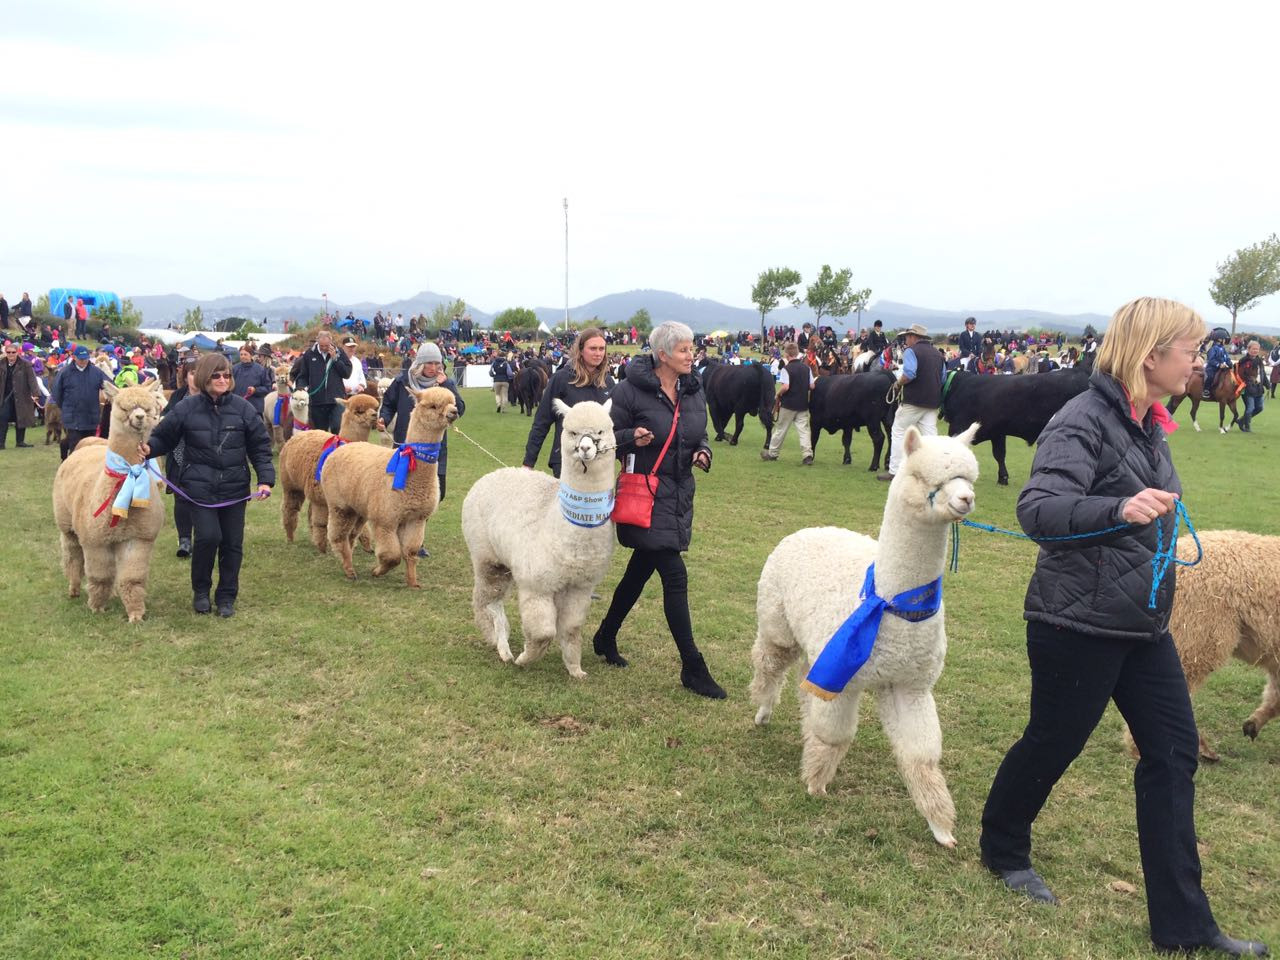 The Ballantynes Grand Parade was the final attraction of the event held on Friday, November 11. It was the showcase of the best of the best with prize winners across most livestock and equestrian sections parading their ribbons. The Parade is led by the Canterbury Caledonian Pipe Band.